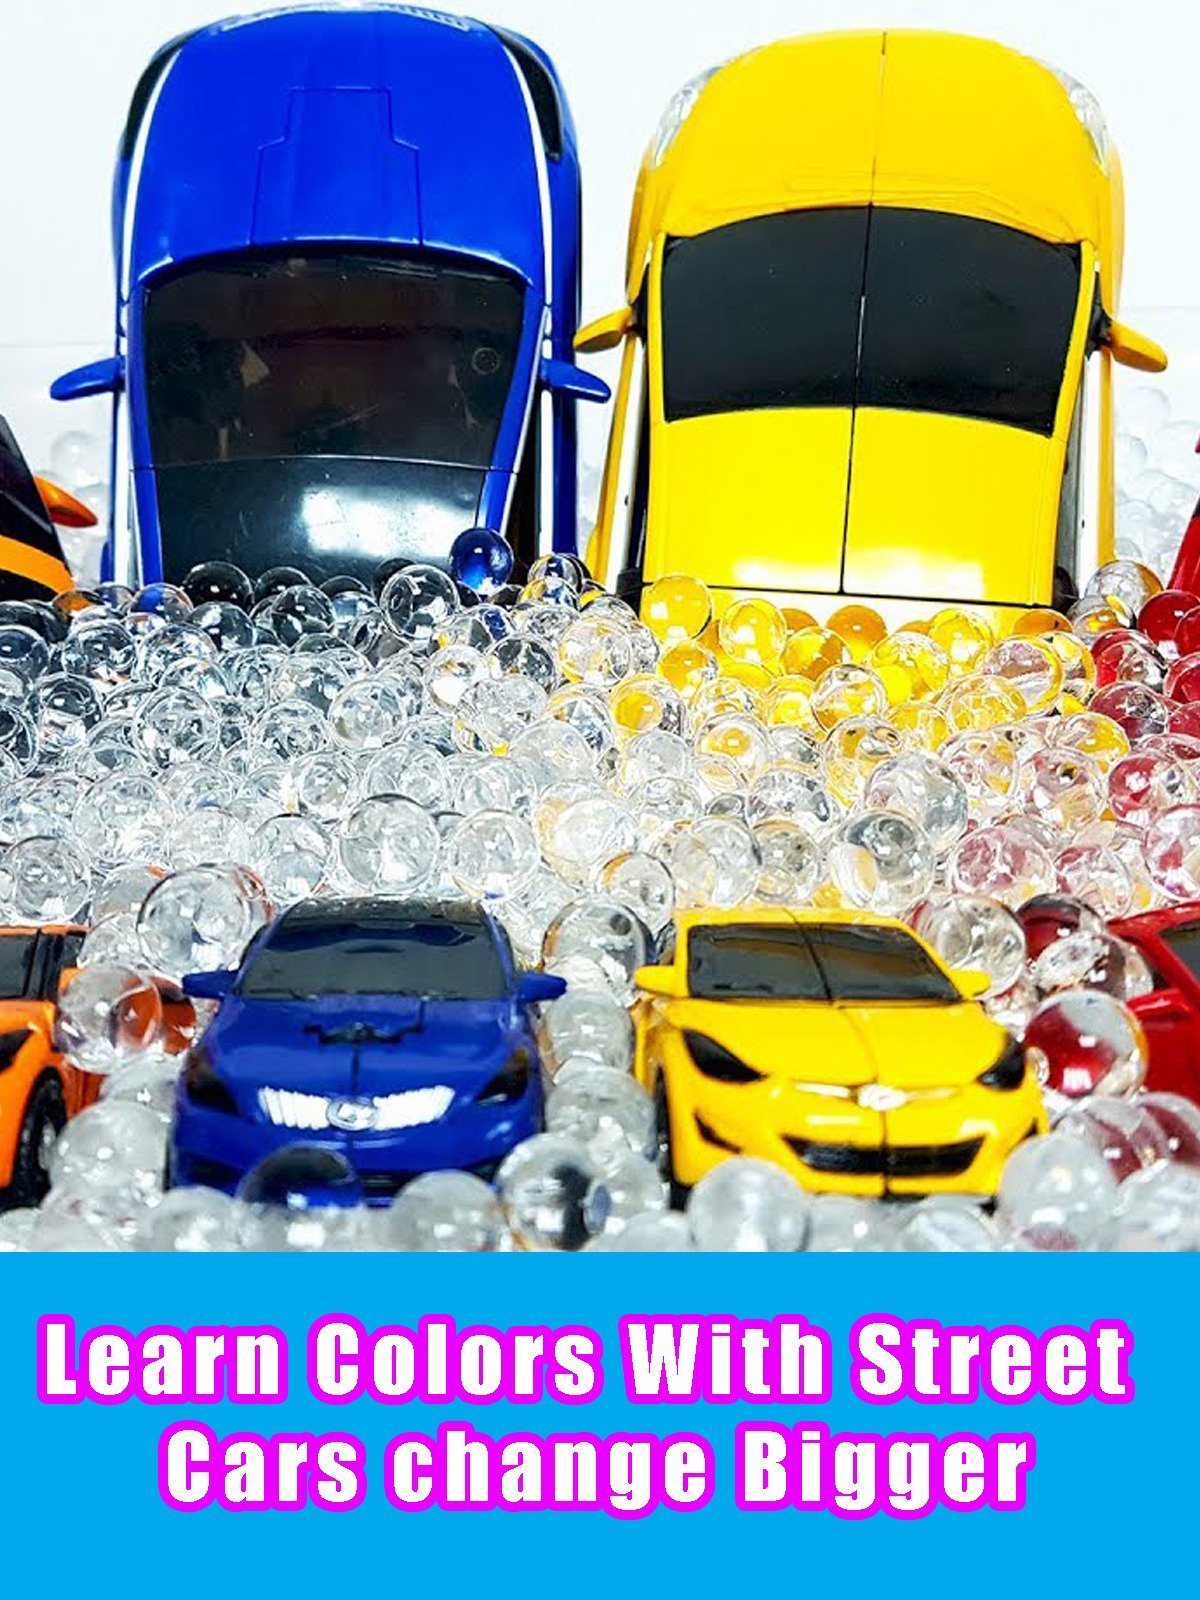 Learn Colors With Street Cars change Bigger